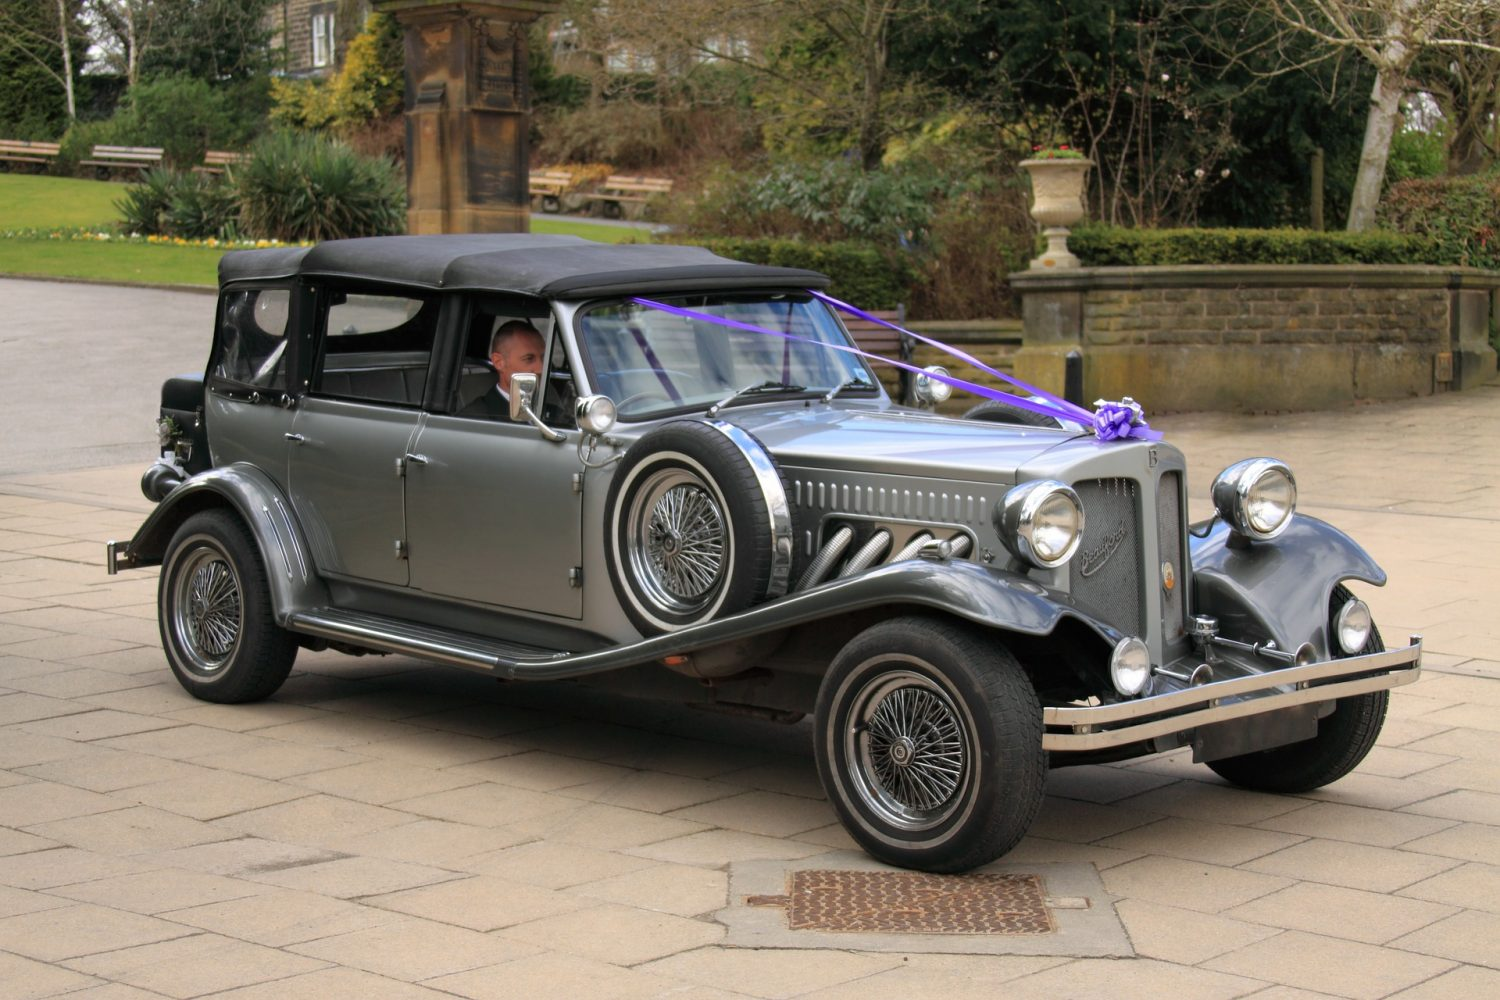 Wedding cars in Oxfordshire, Warwickshire, Buckinghamshire and Northamptonshire